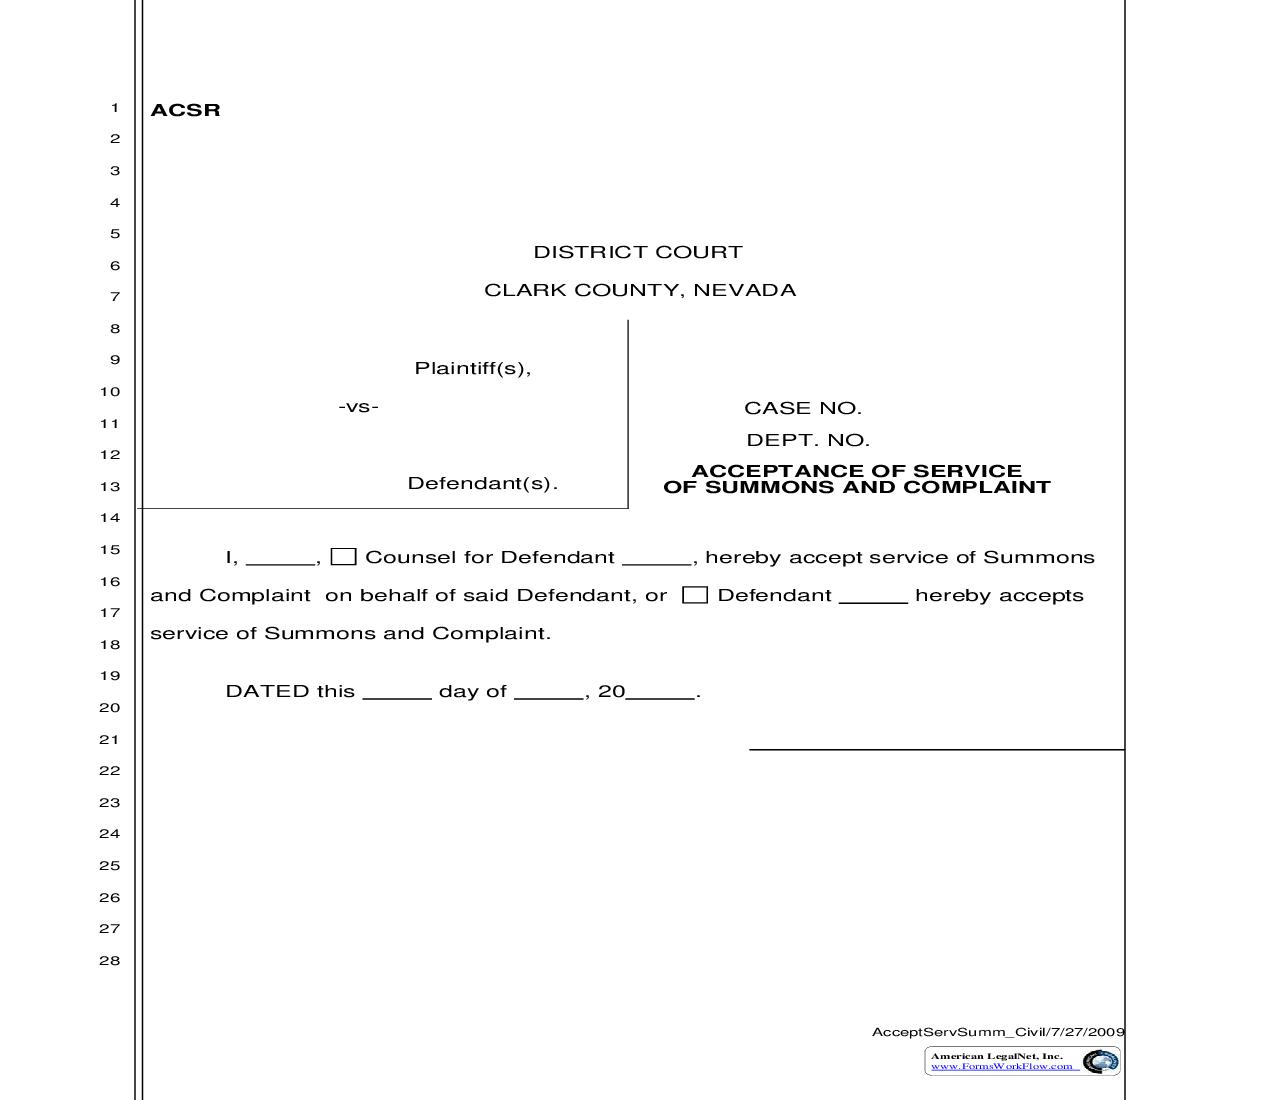 Acceptance Of Service Of Summons And Complaint {ACSR}   Pdf Fpdf Doc Docx   Nevada